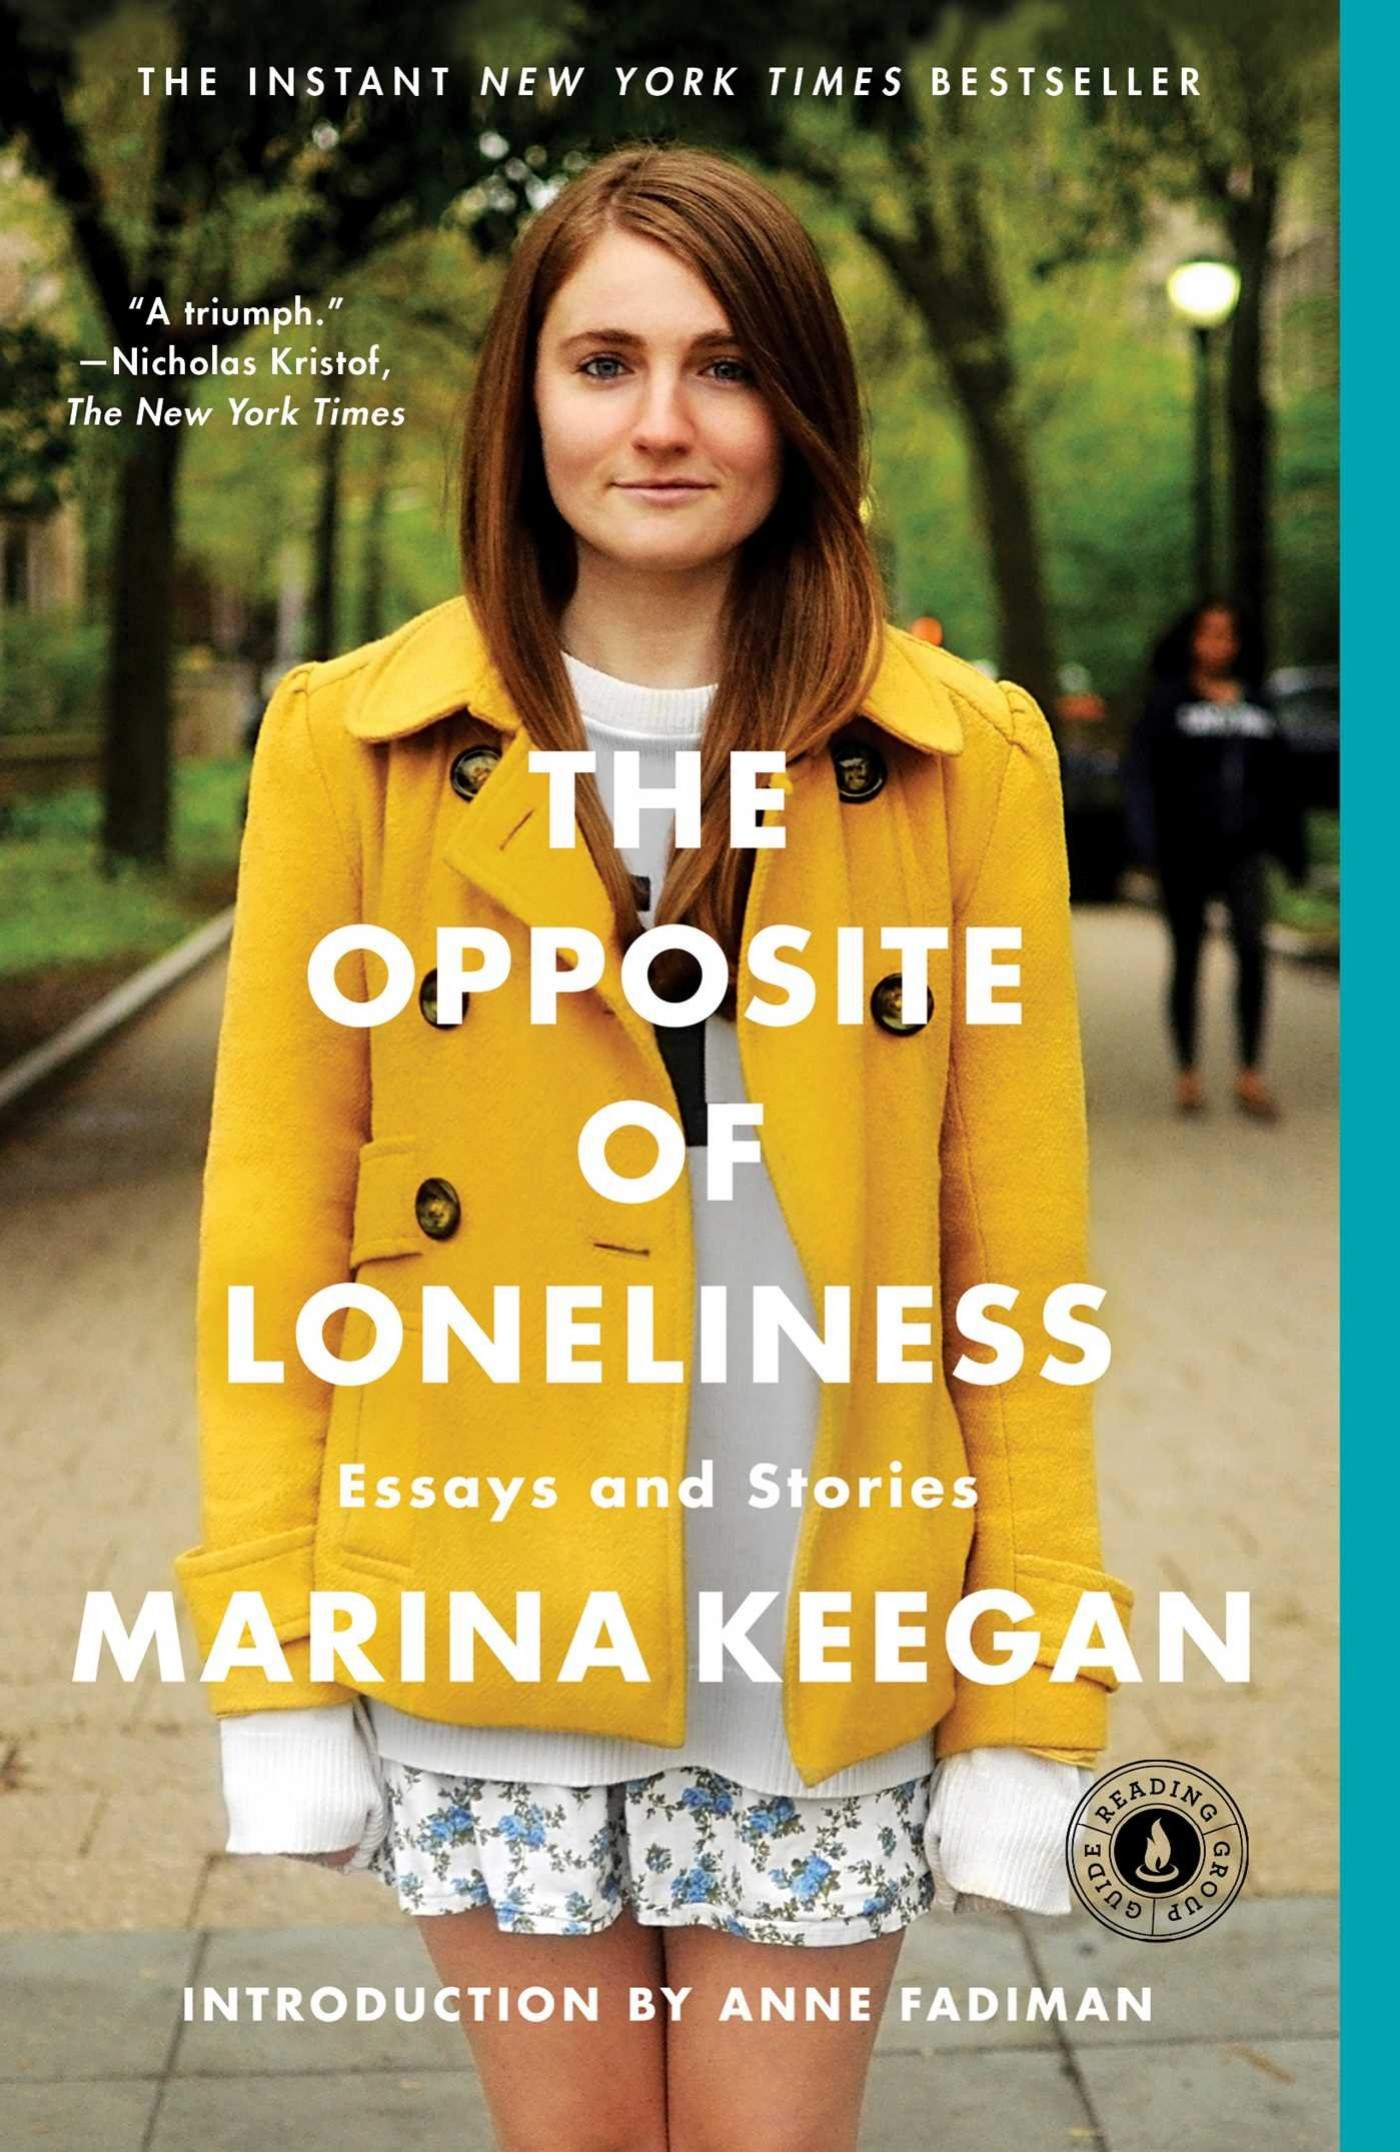 002 81xm Clxskl The Opposite Of Loneliness Essay Fascinating Book Essays And Stories 1400